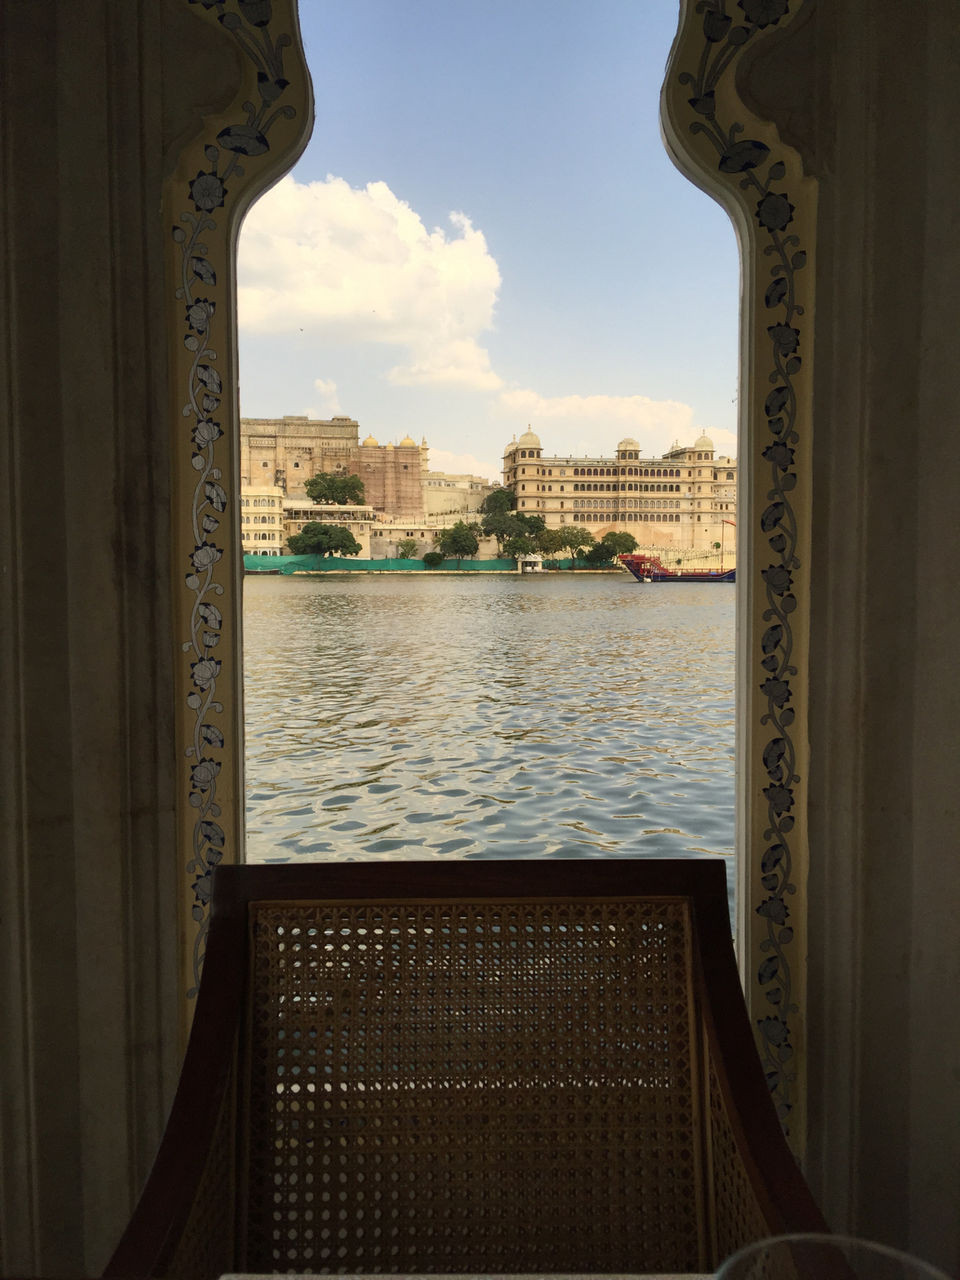 Photos of Udaipur: My 2 Day Trip Got Me Eating Delectable Lamb 1/1 by Chitra